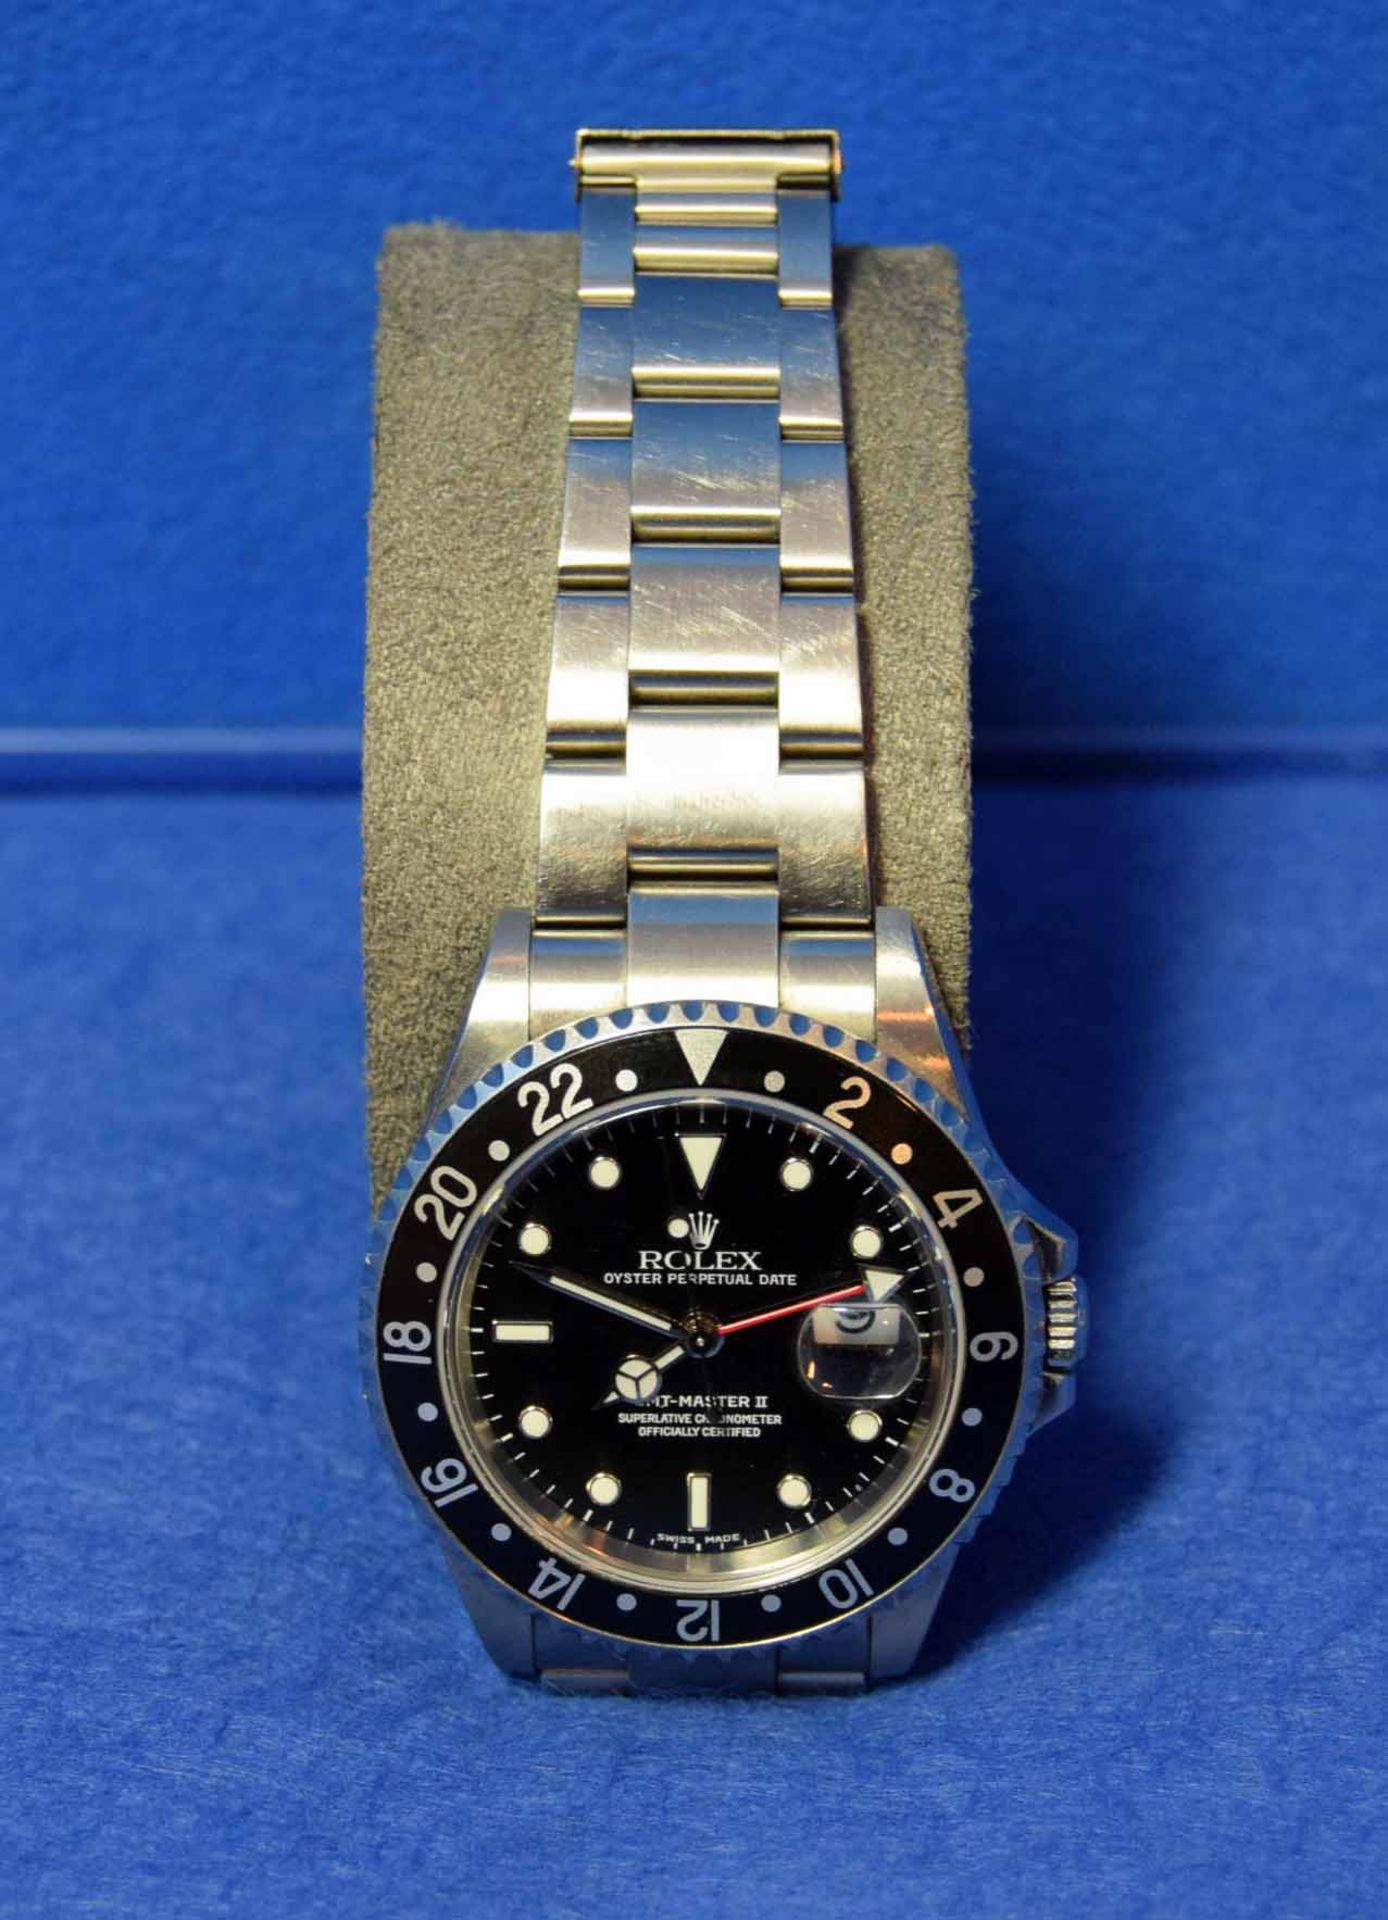 A ROLEX GMT-Master II Watch in a 40mm dia. Oyster Steel Case, with a Black Dial surrounded by a - Image 3 of 7